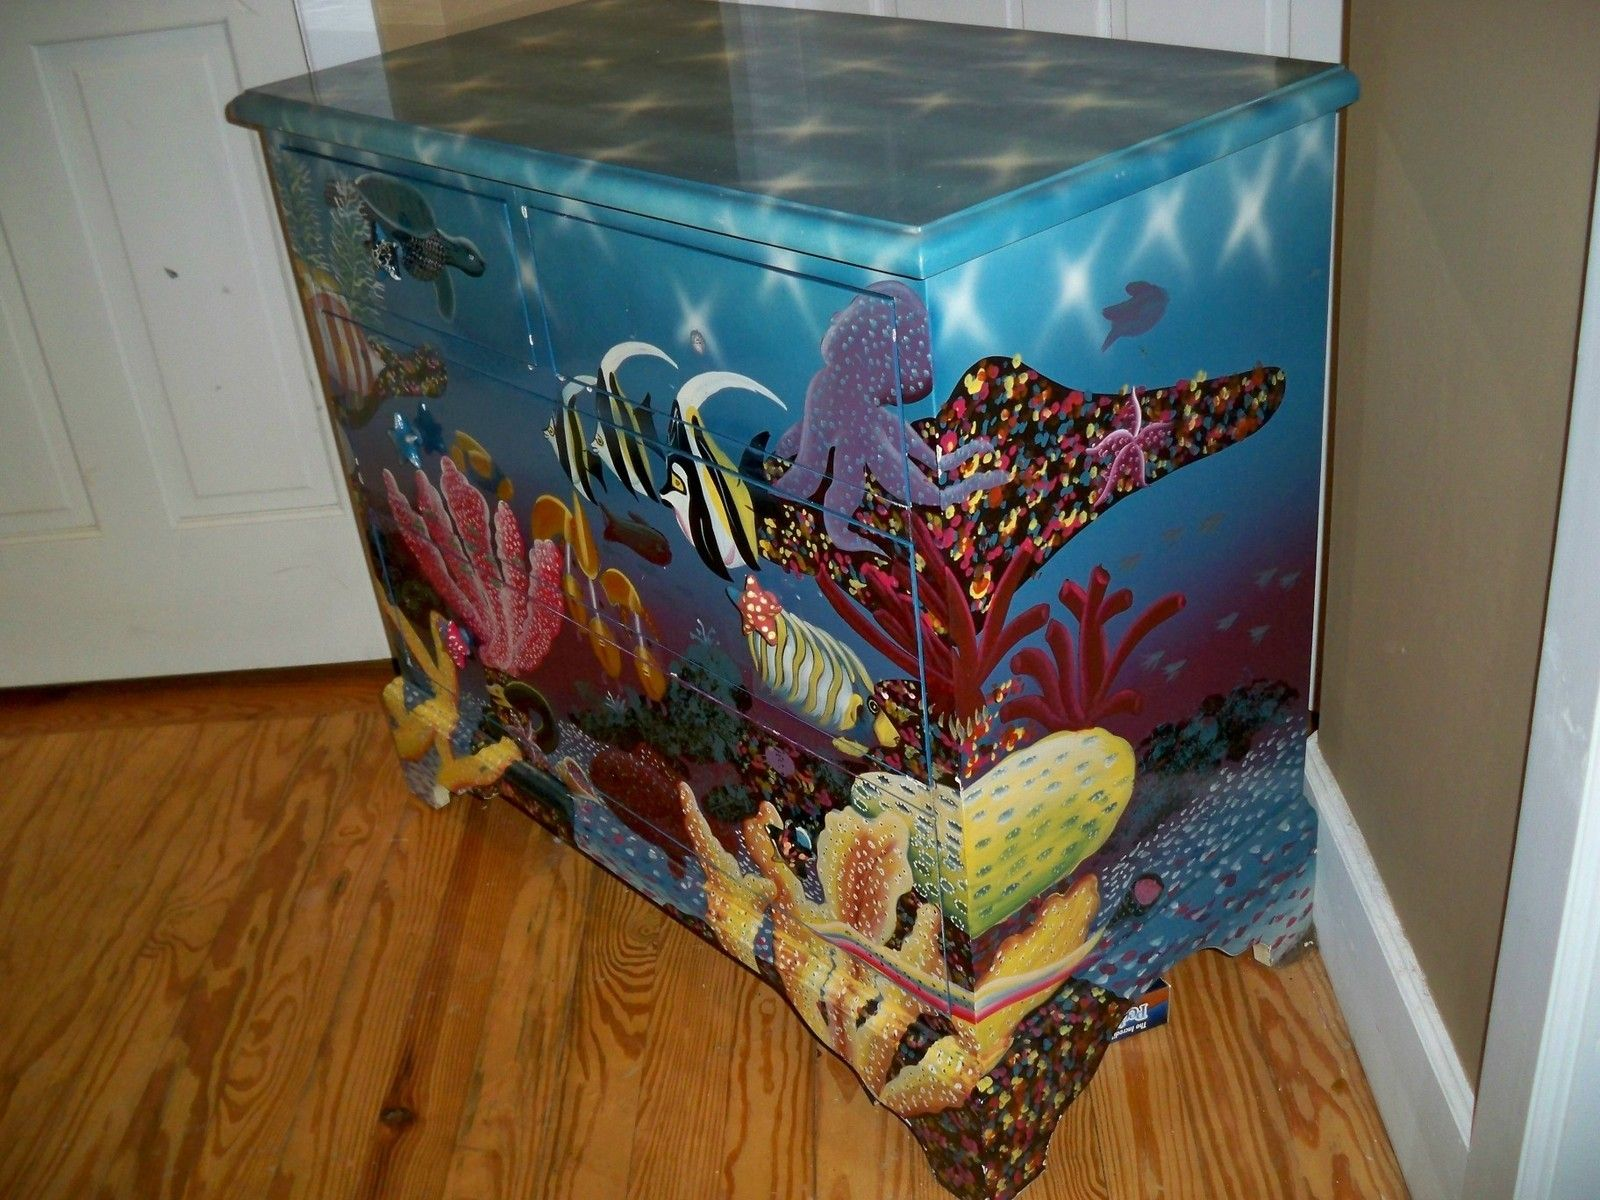 425 00 Ultimate Accents Dresser Chest Painted Airbrushed Fish Nautical Tropical 36 W Ebay